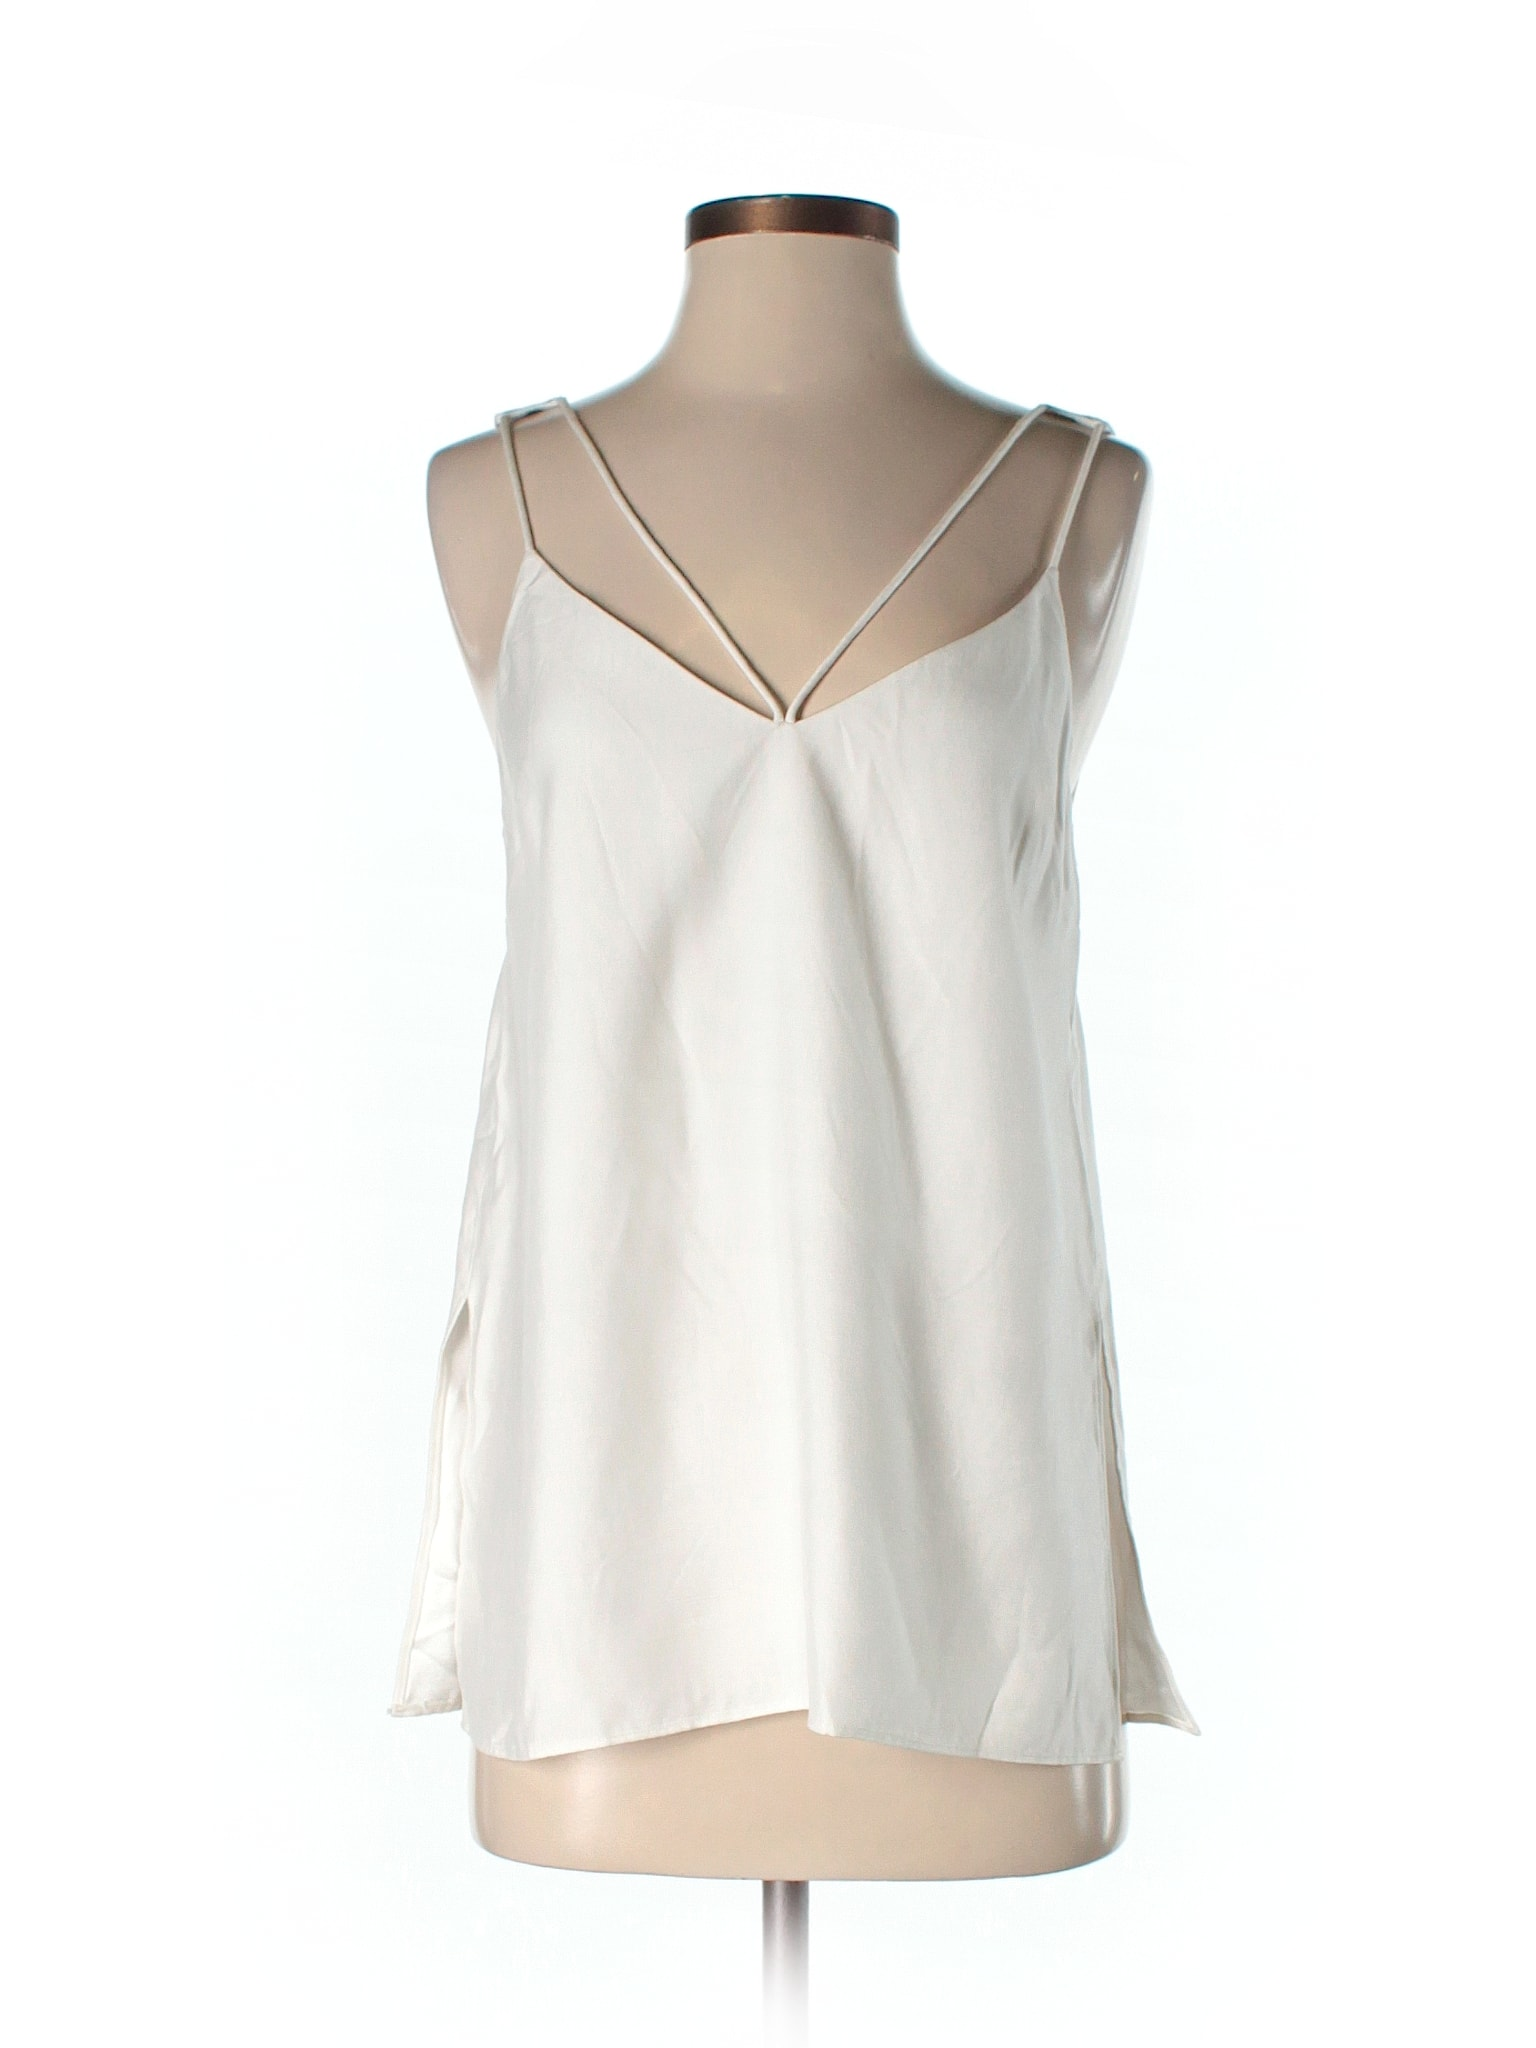 C/MEO Collective Silk Tank - As seen on GMA!